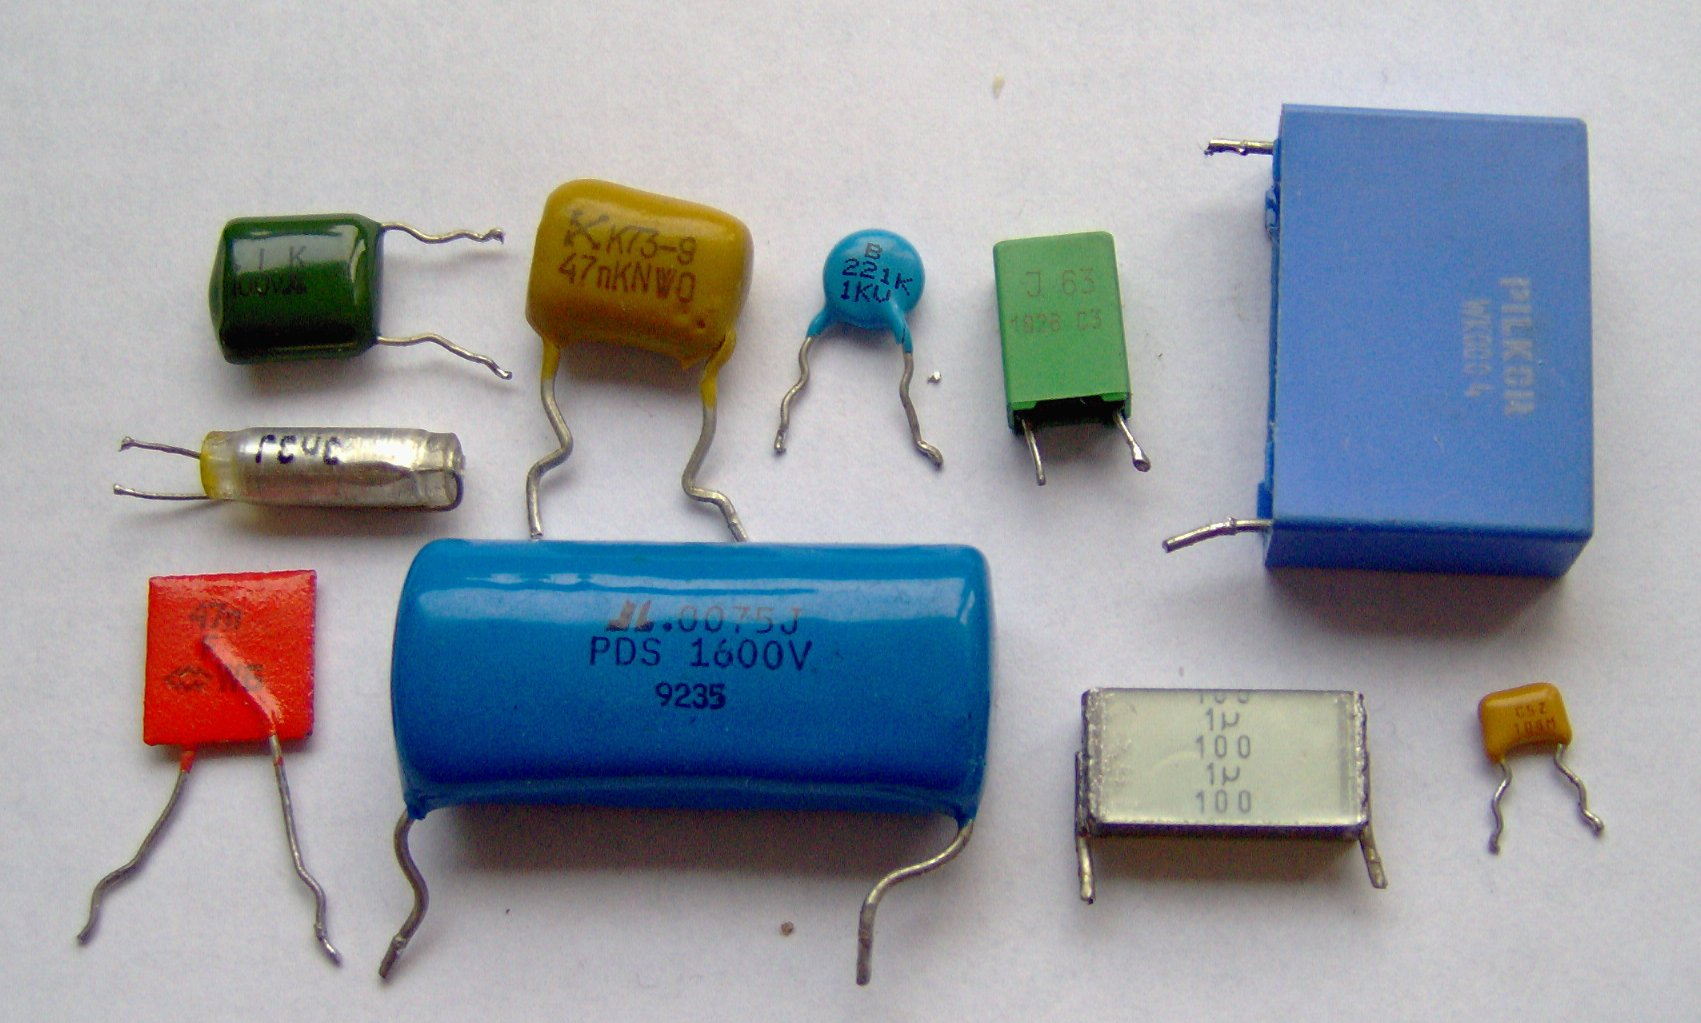 Esr On Capacitors topic346902 likewise Failure Analysis Mlccs as well Capacitor Printed Values together with Microwave  ponents additionally Make Solar Aa Battery Charger By Tl497. on ceramic capacitor testing